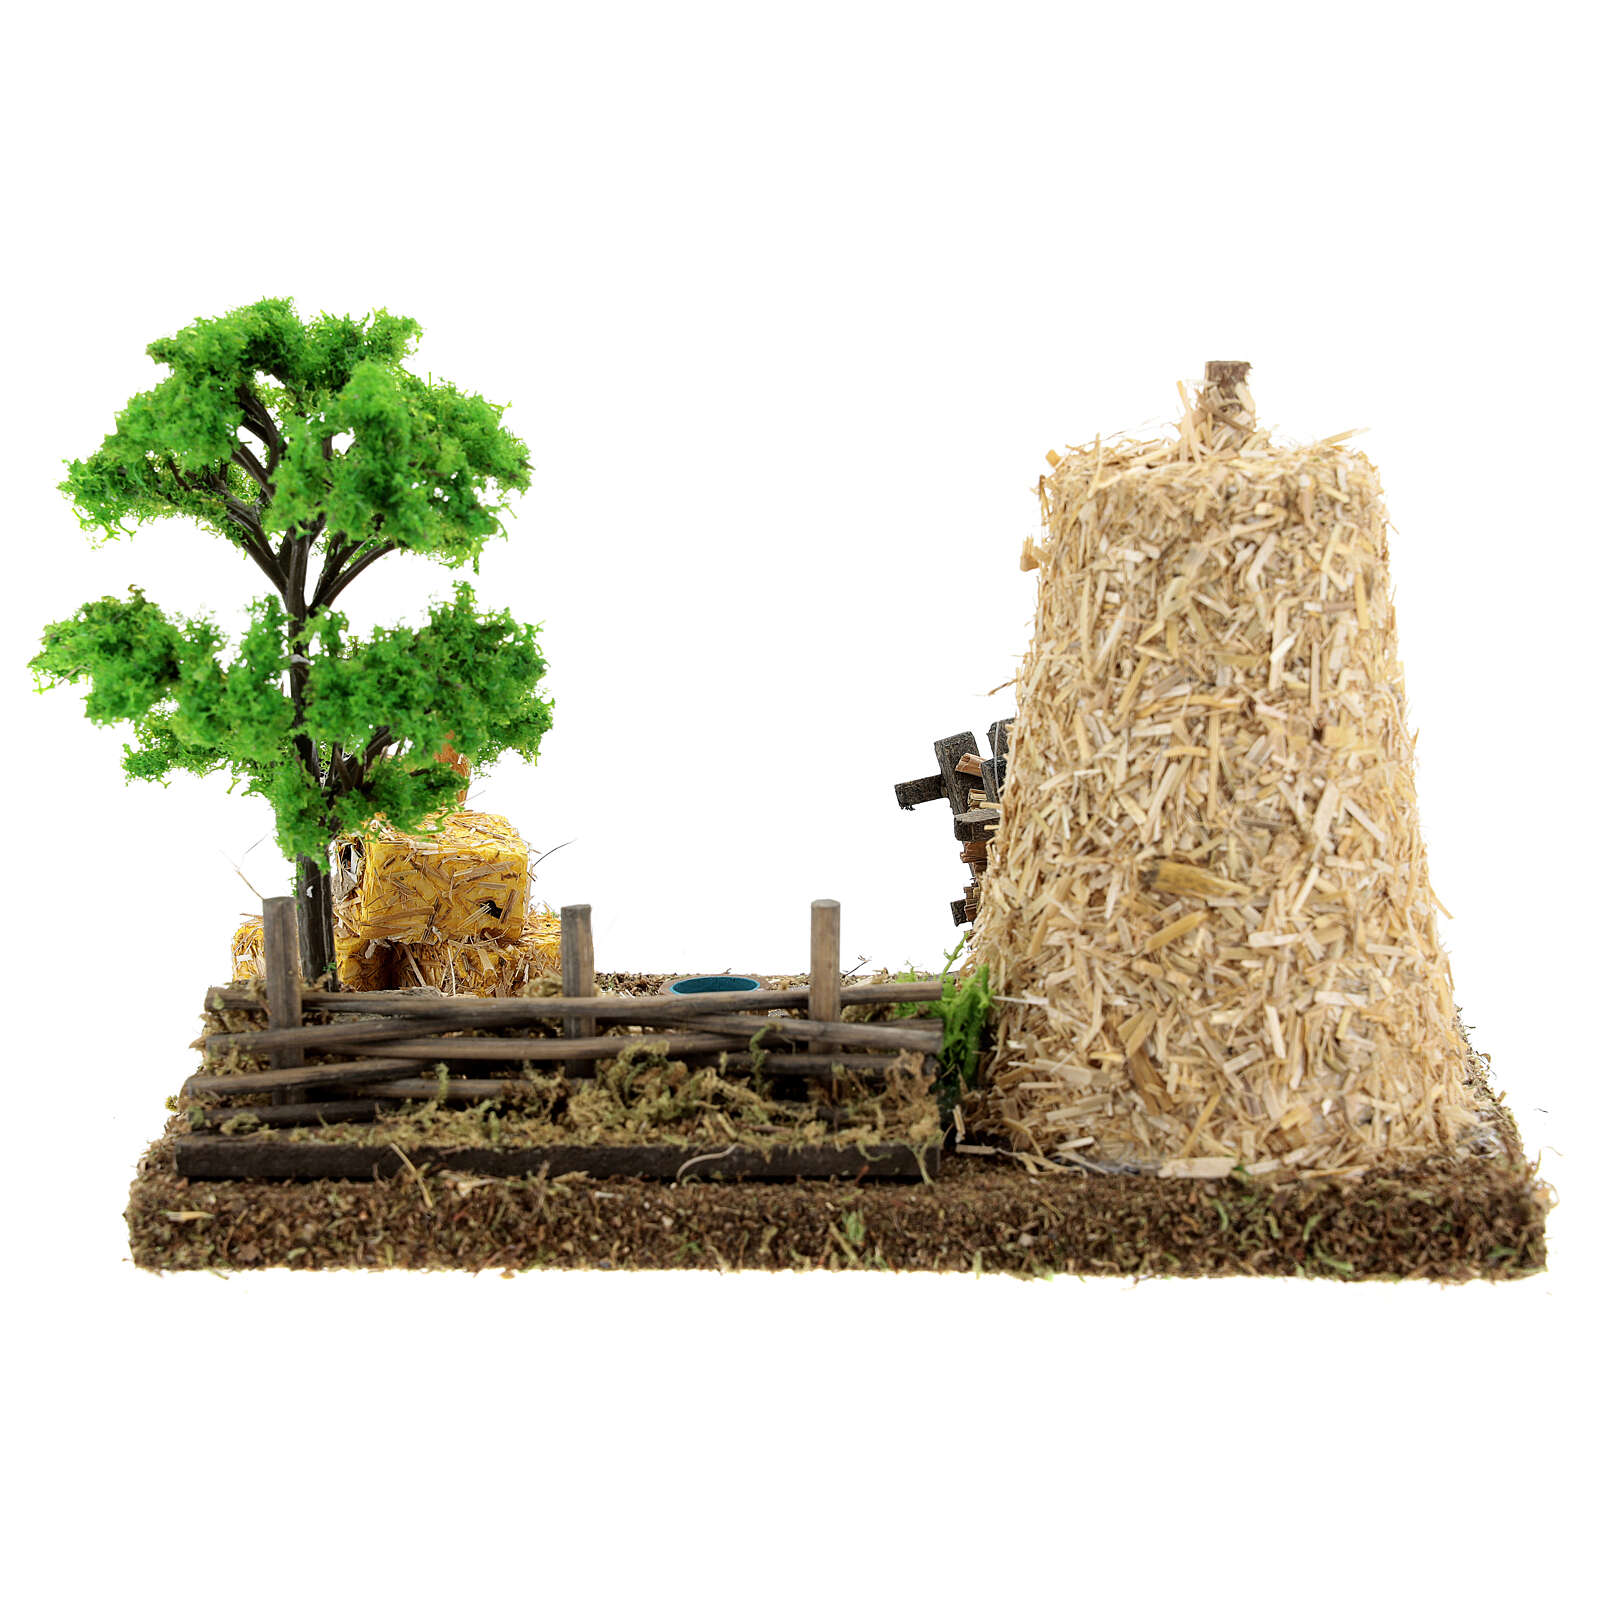 Nativity scene decor: vegetable garden corner with barn 20x15x15 cm 4